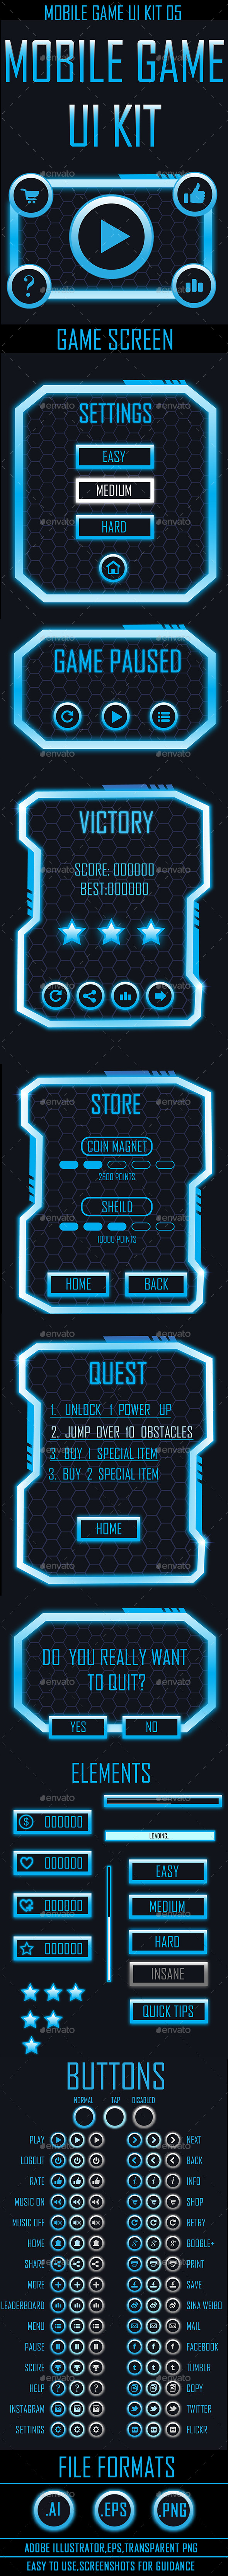 GraphicRiver Mobile Game UI 05 9682324